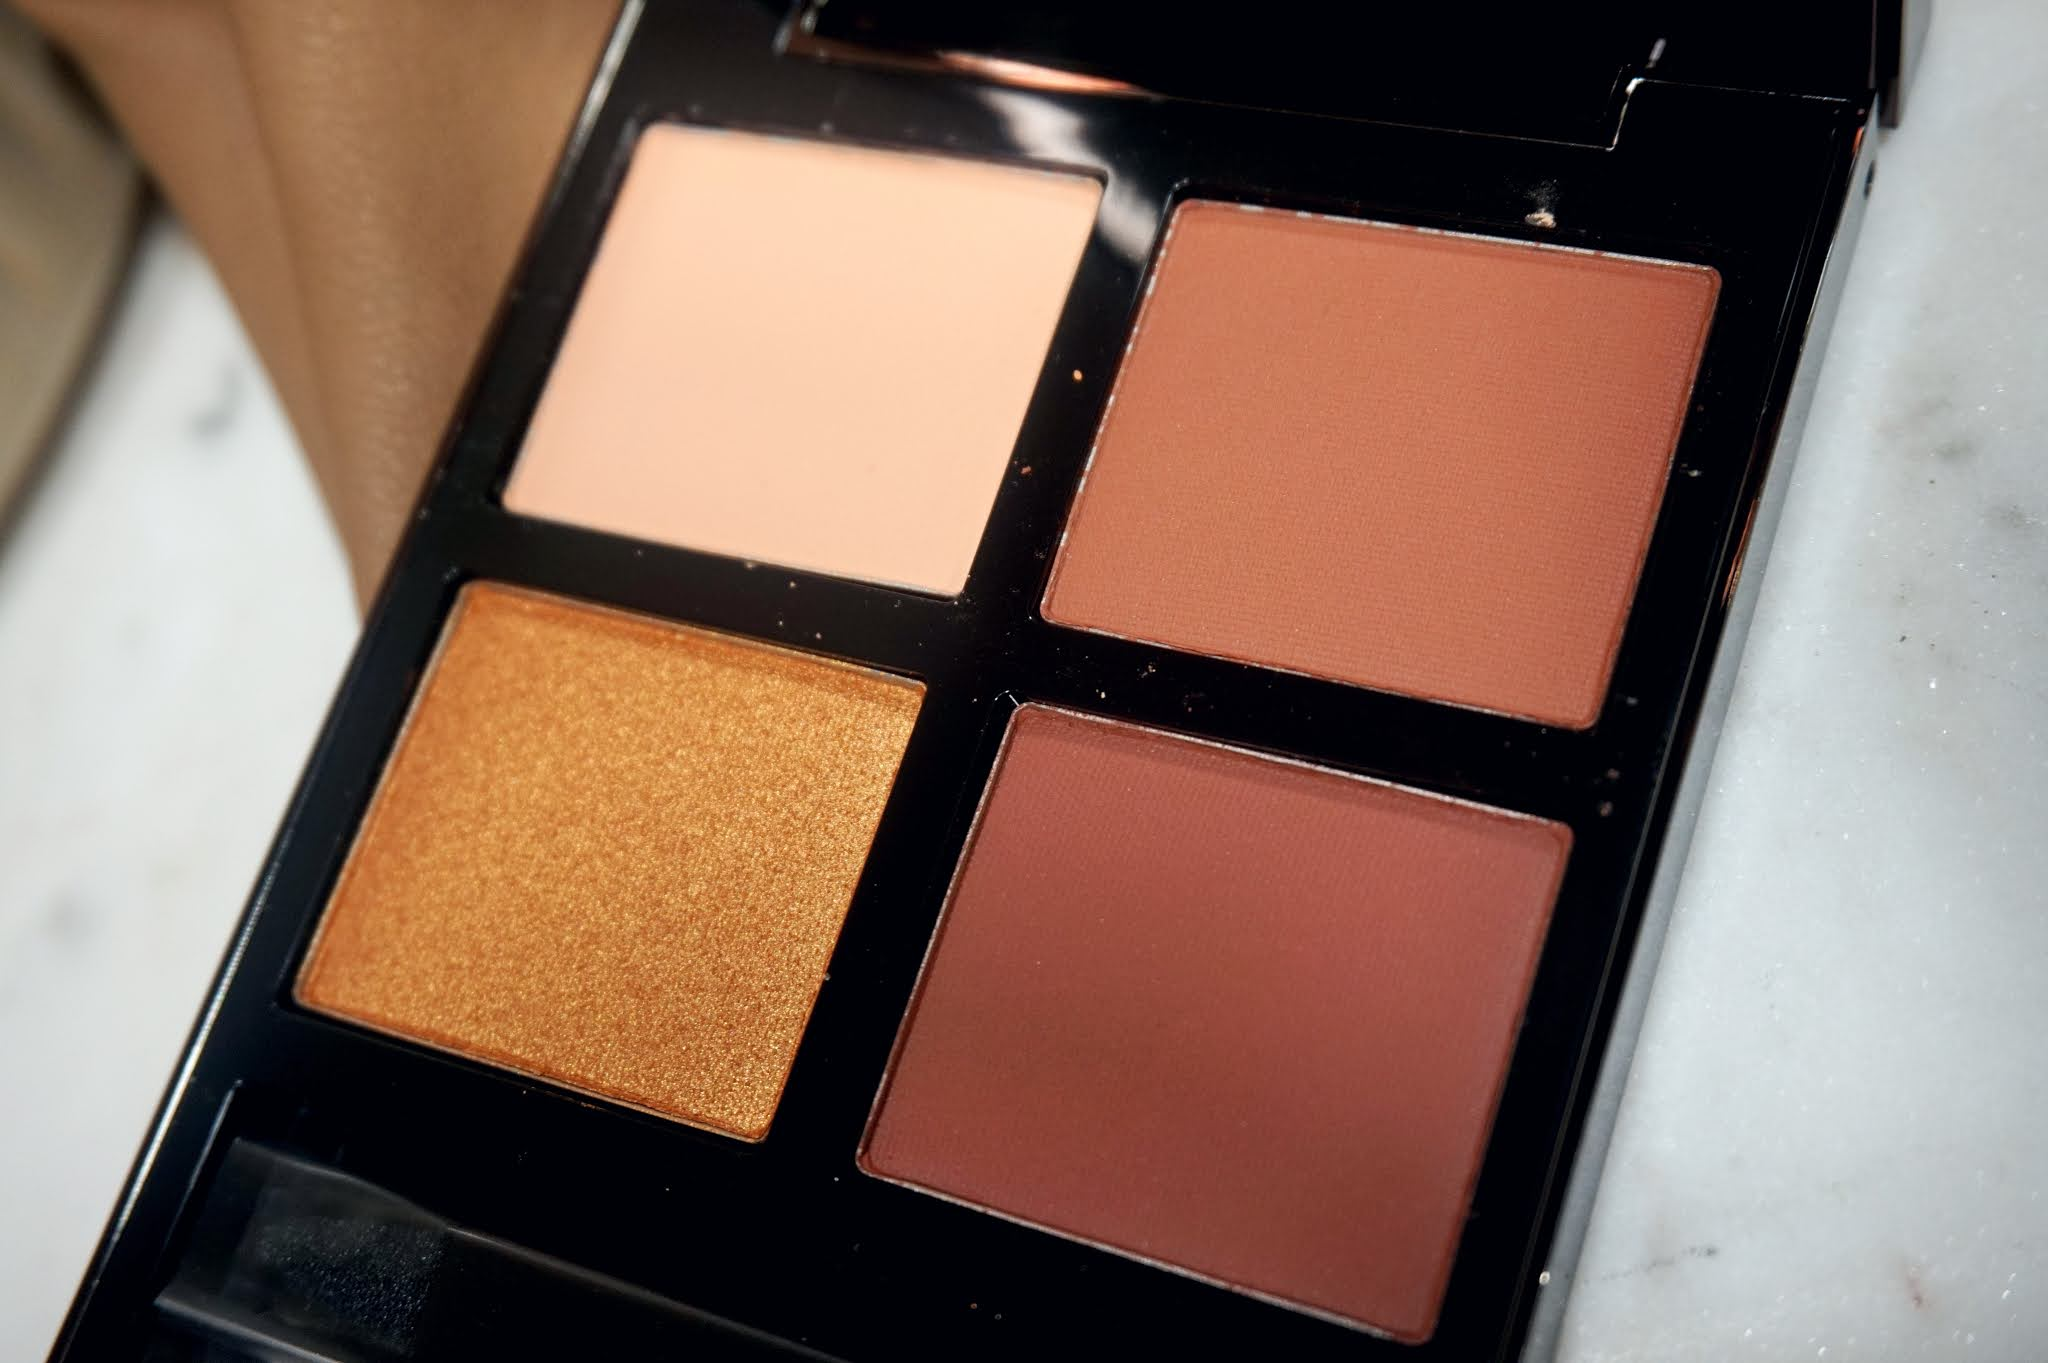 Tom Ford Desert Fox Eye Color Quad Review and Swatches